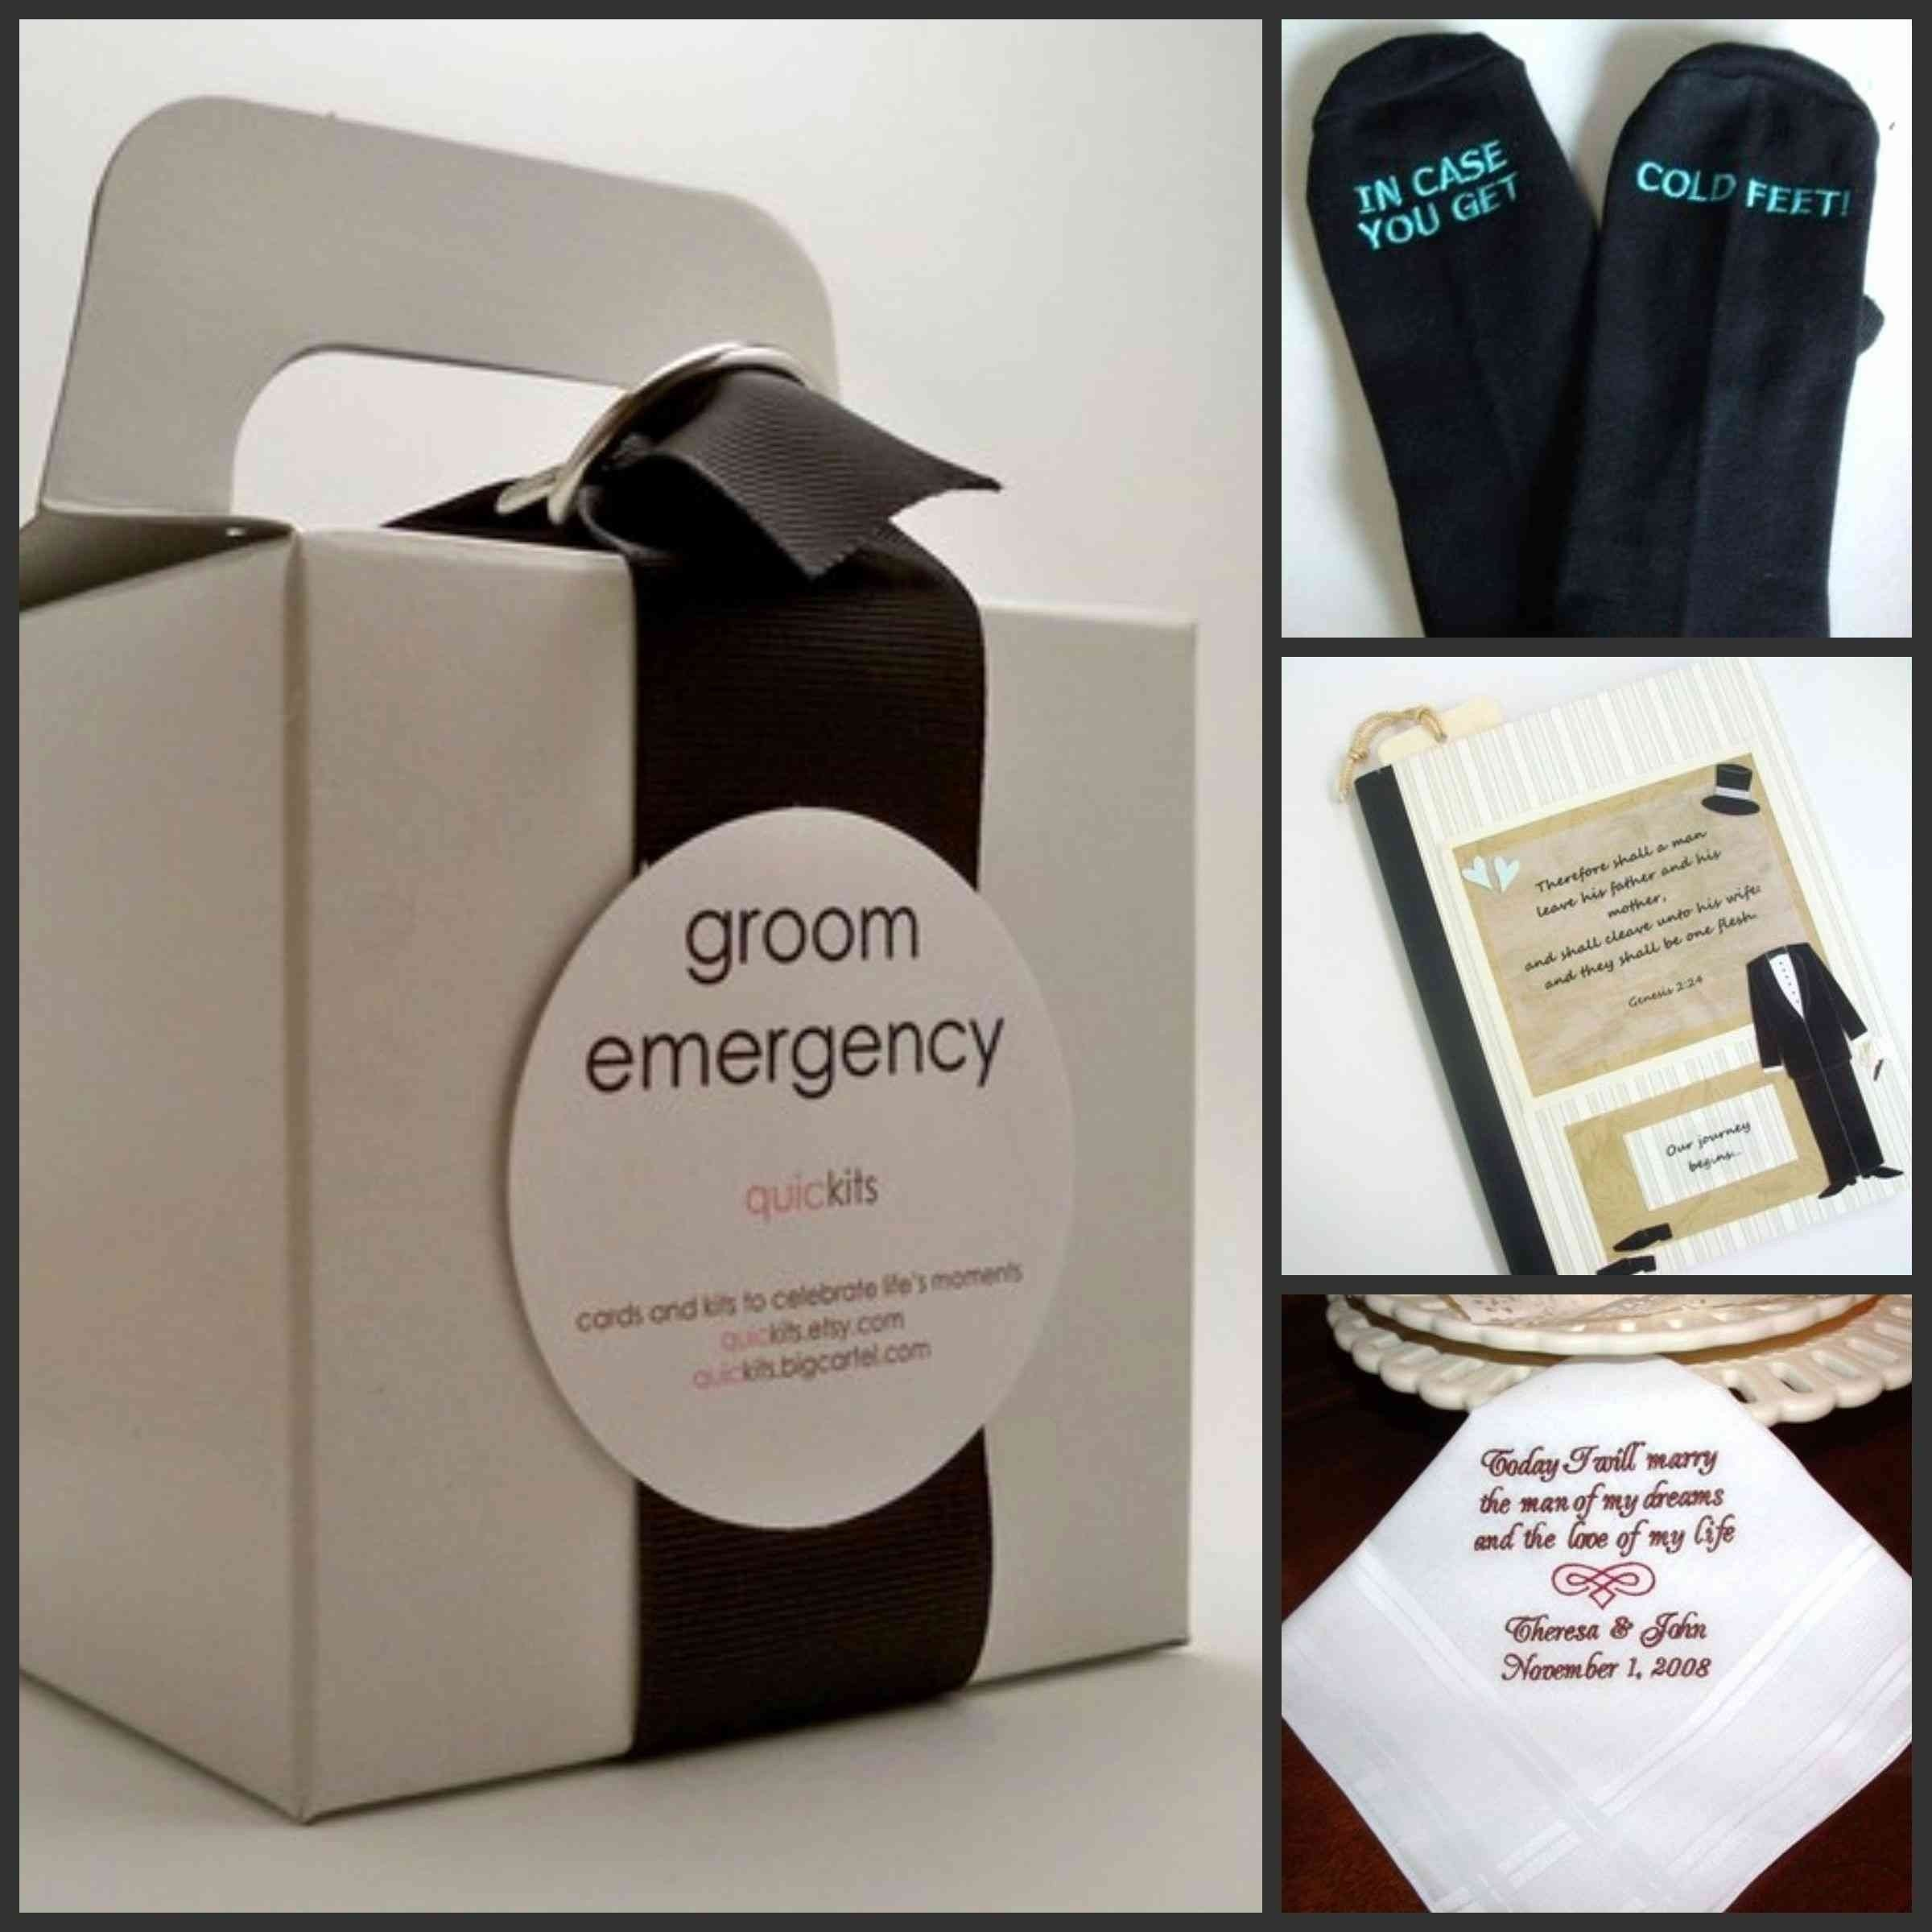 10 Most Recommended Gift Ideas For The Groom great wedding gifts for bride and groom lovely creative gift ideas 1 2020